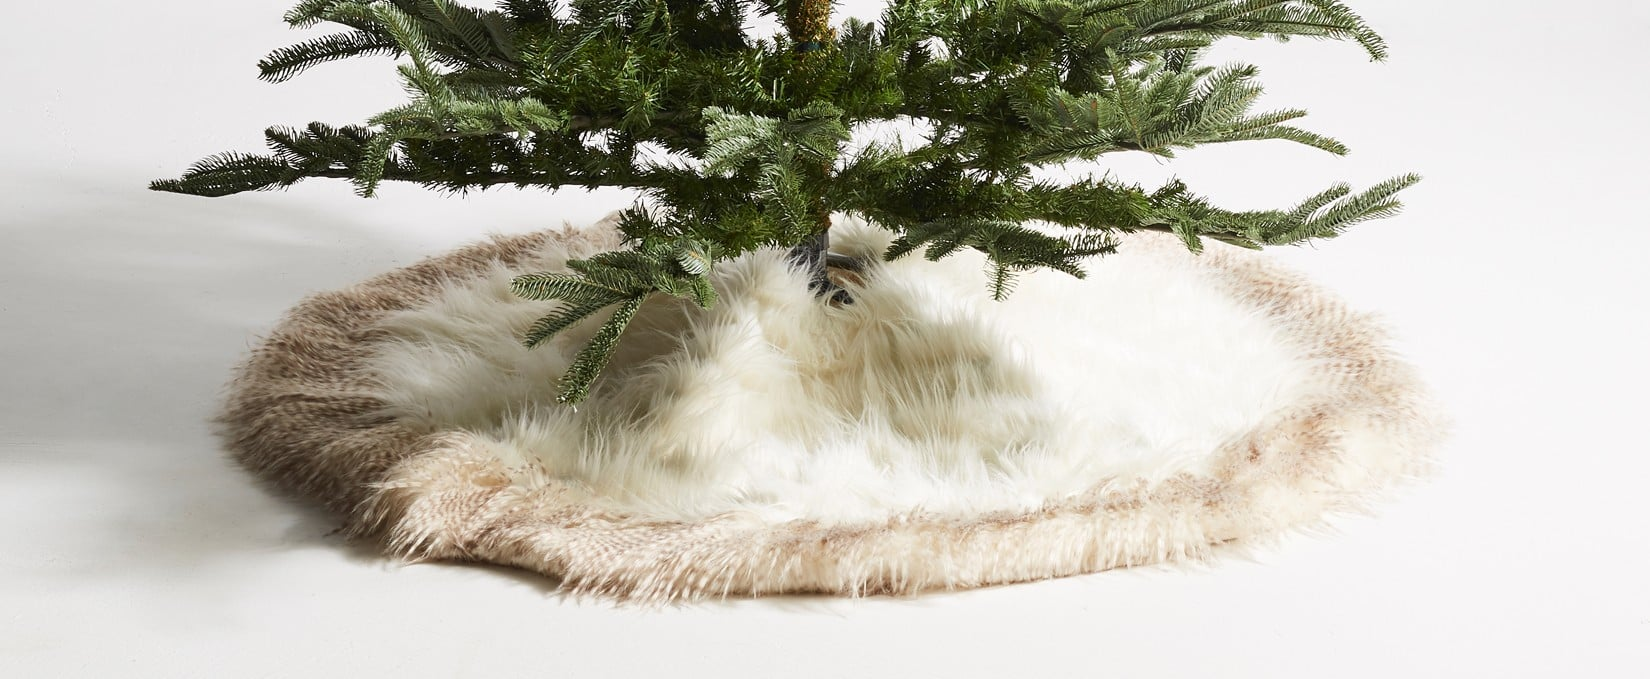 Anthropologie Holiday Decorations 2018